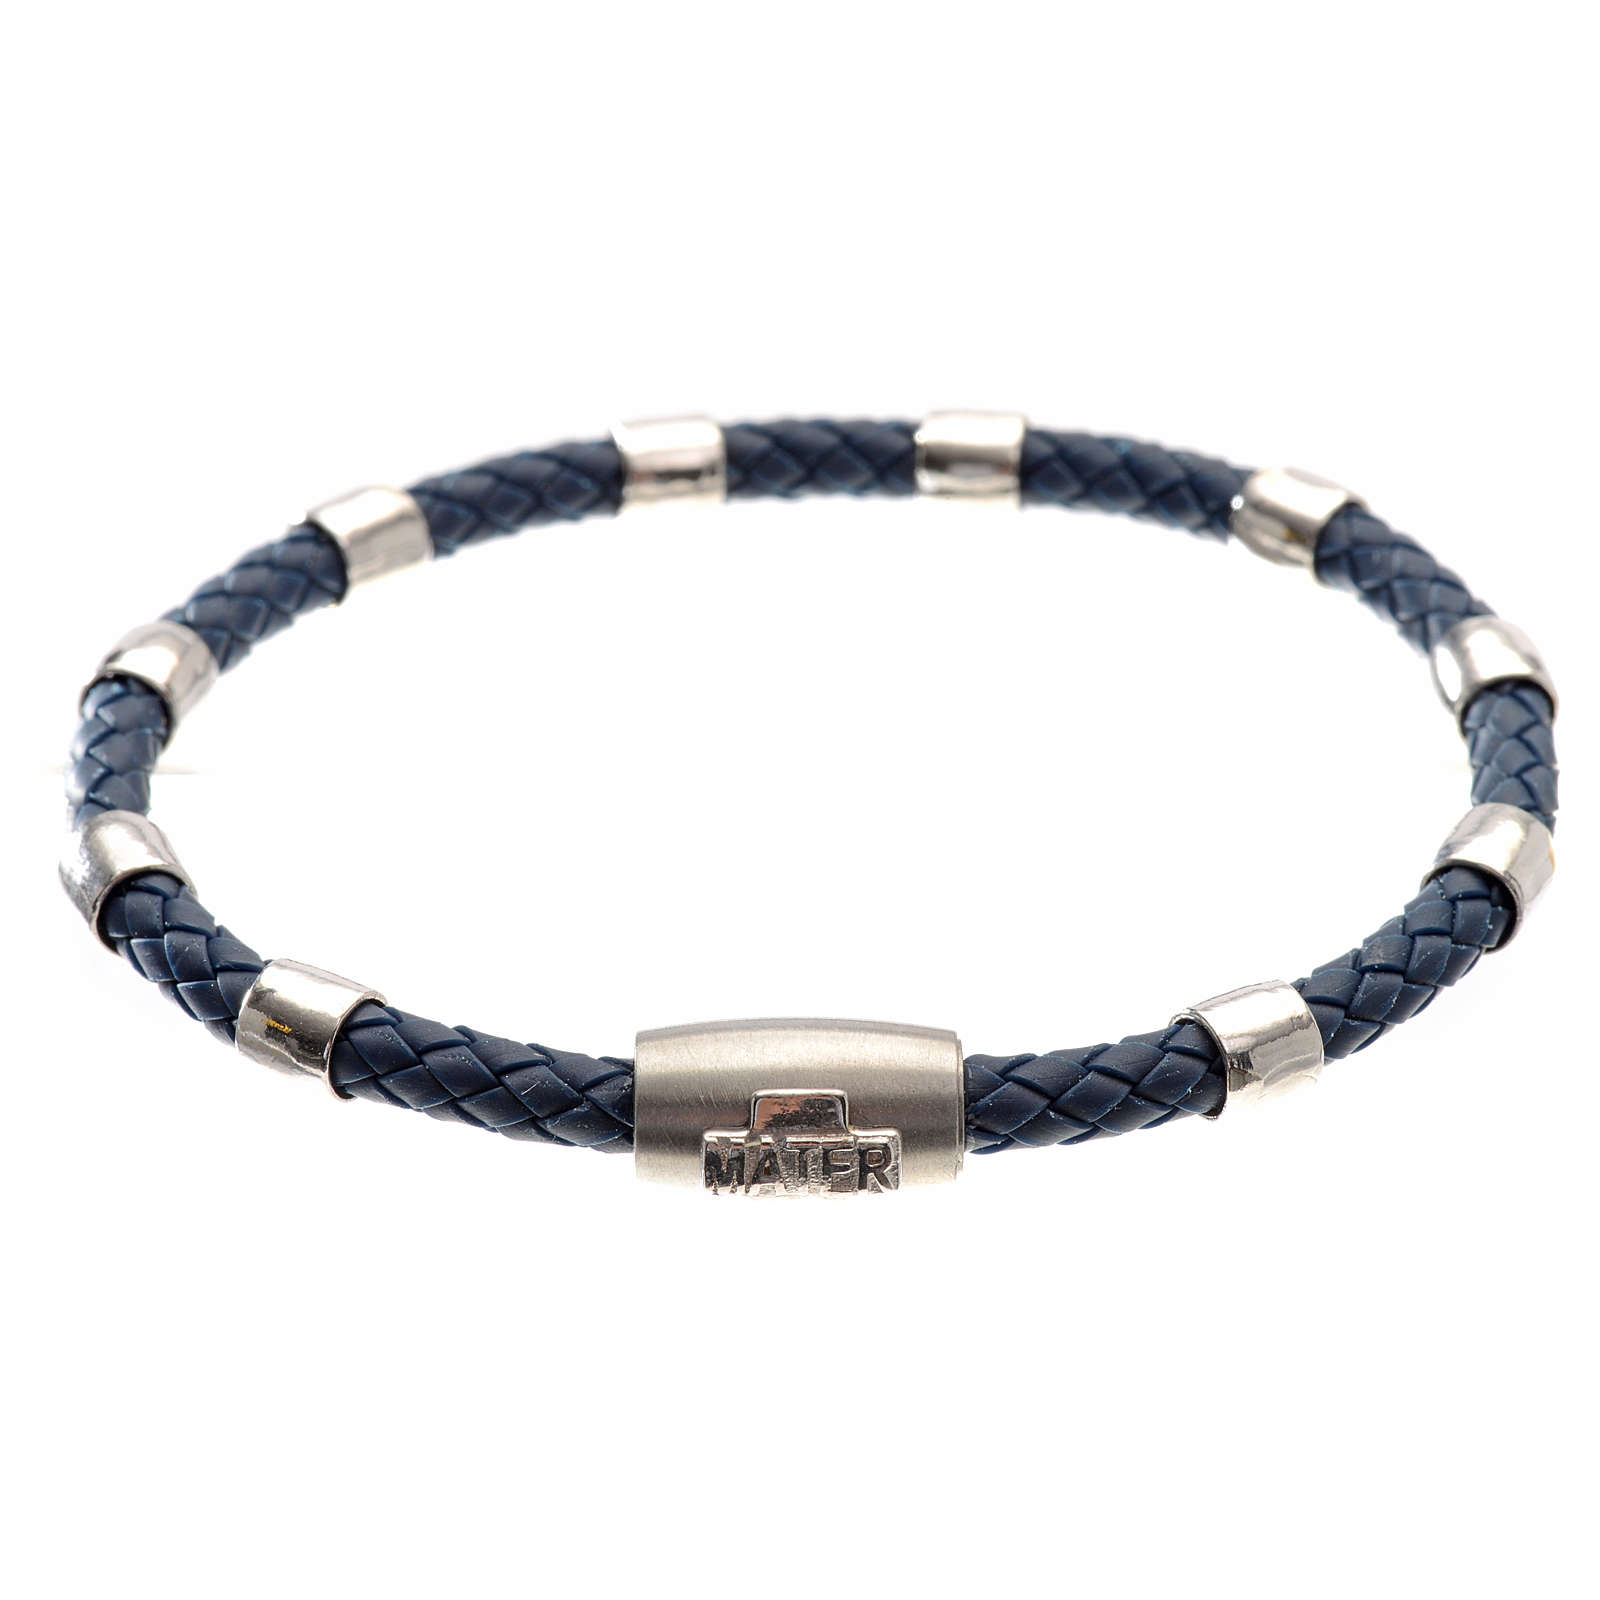 One decade bracelet in silver and blue leather, MATER jewels 4